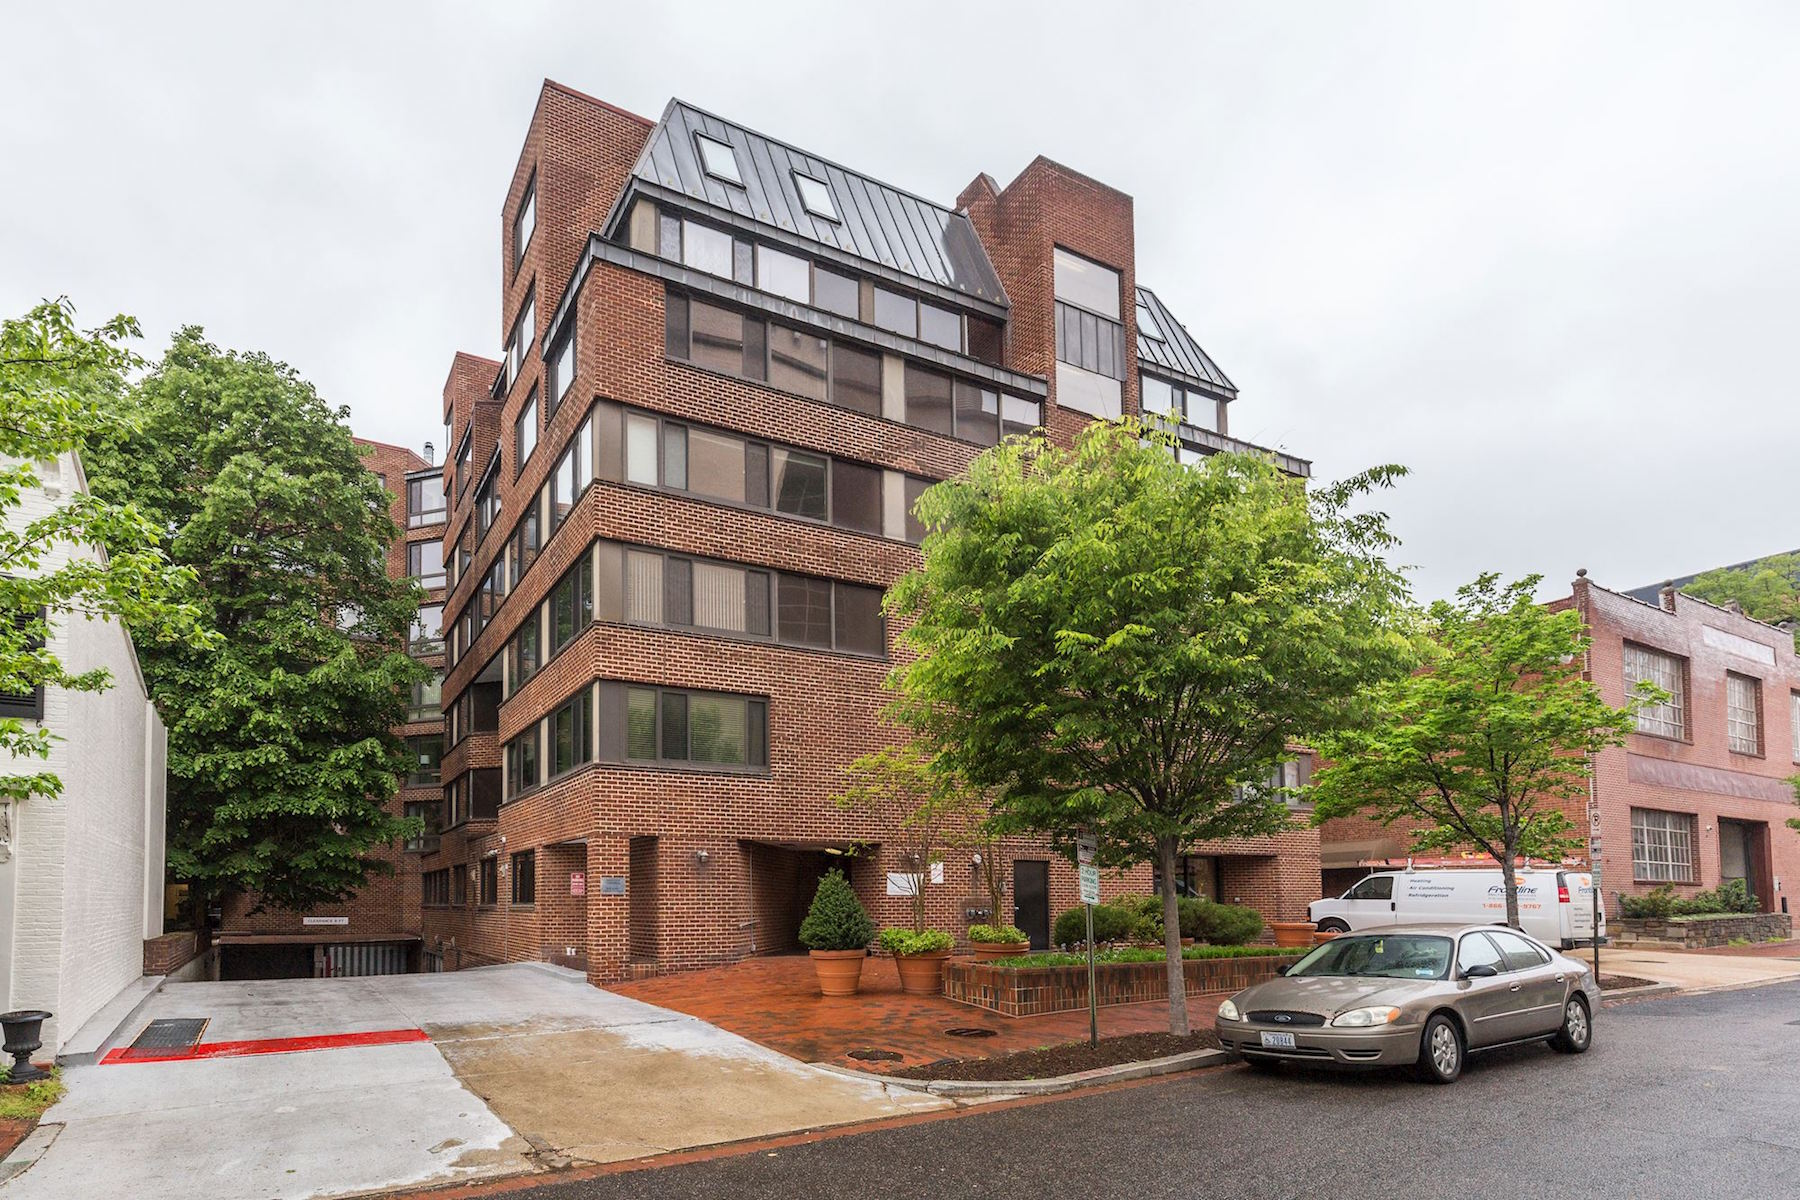 Condominium for Sale at James Place #507 1077 30th Street Nw 507 Washington, District Of Columbia, 20007 United States